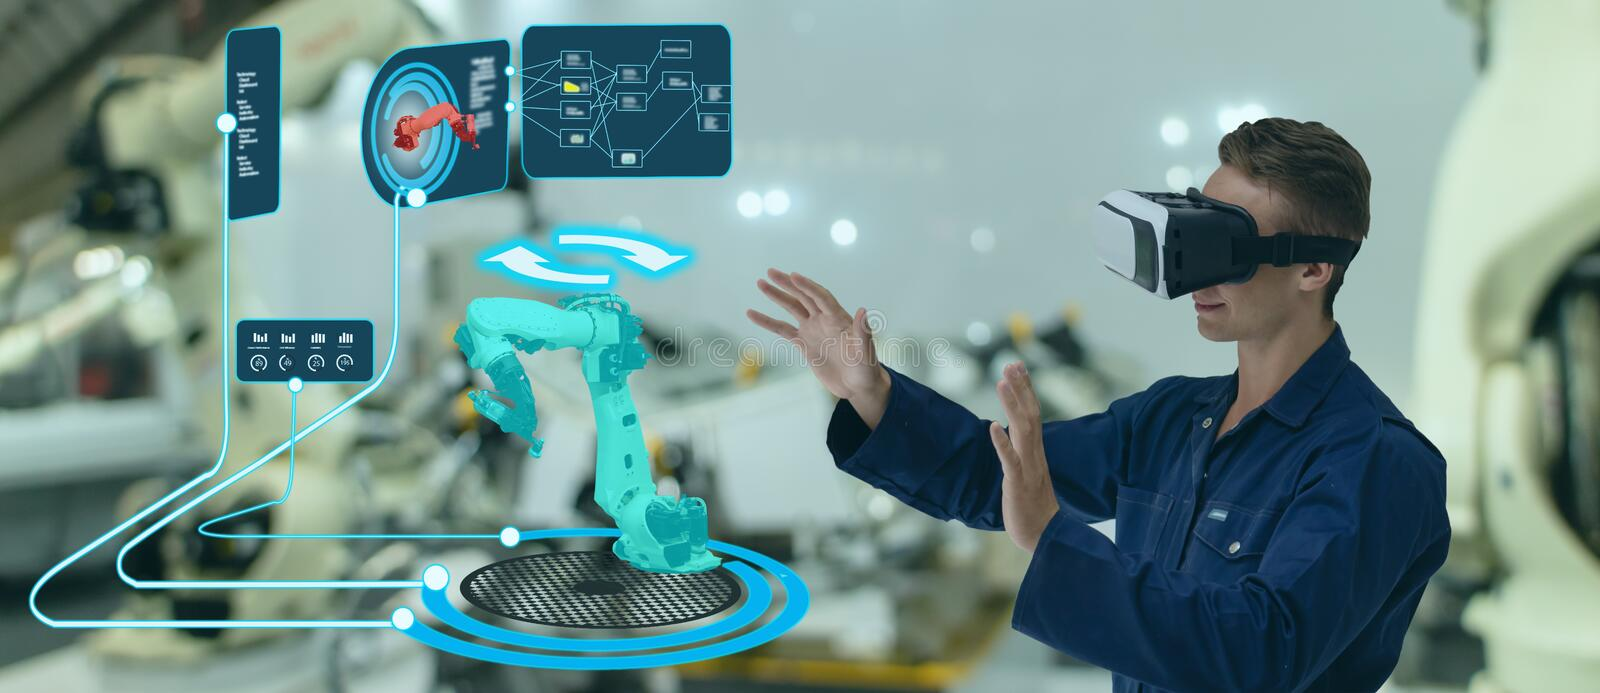 Iot smart technology futuristic in industry 4.0 concept, engineer use augmented mixed virtual reality to education and training, r royalty free stock image